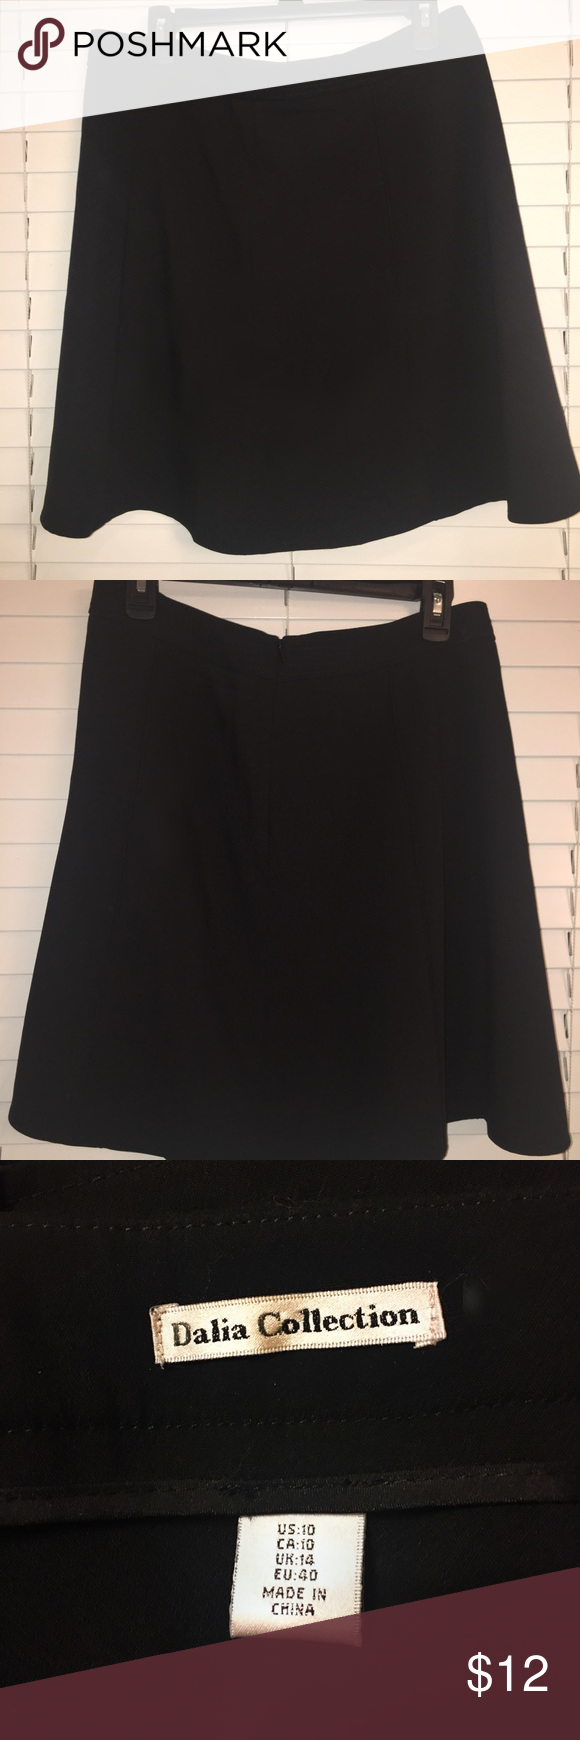 Black Stylish Skirt by Dahlia Collection Very nice and